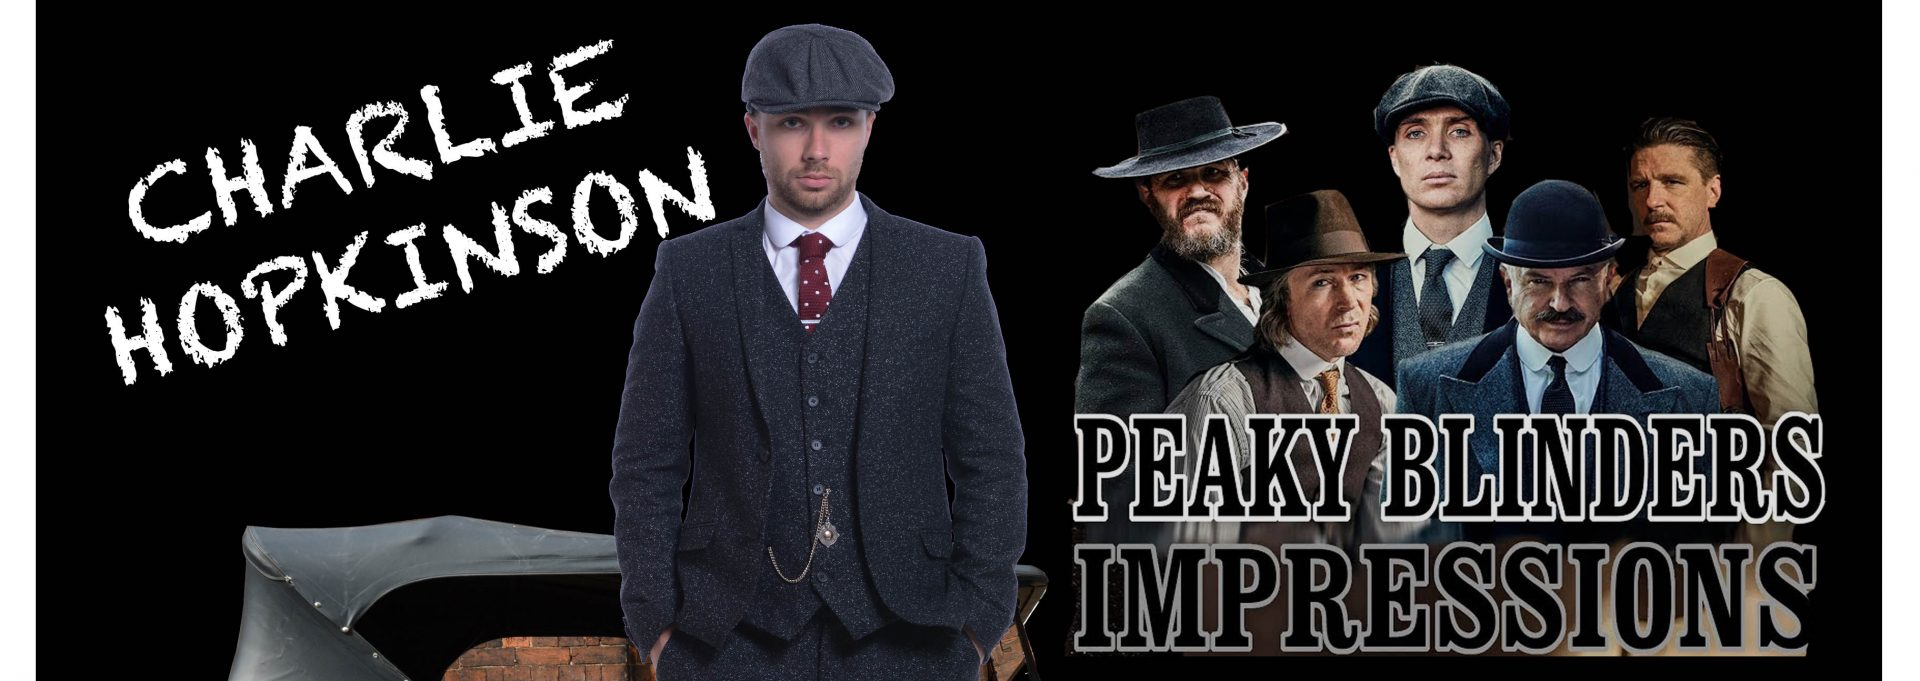 Peaky Blinders Themed Entertainment and Events